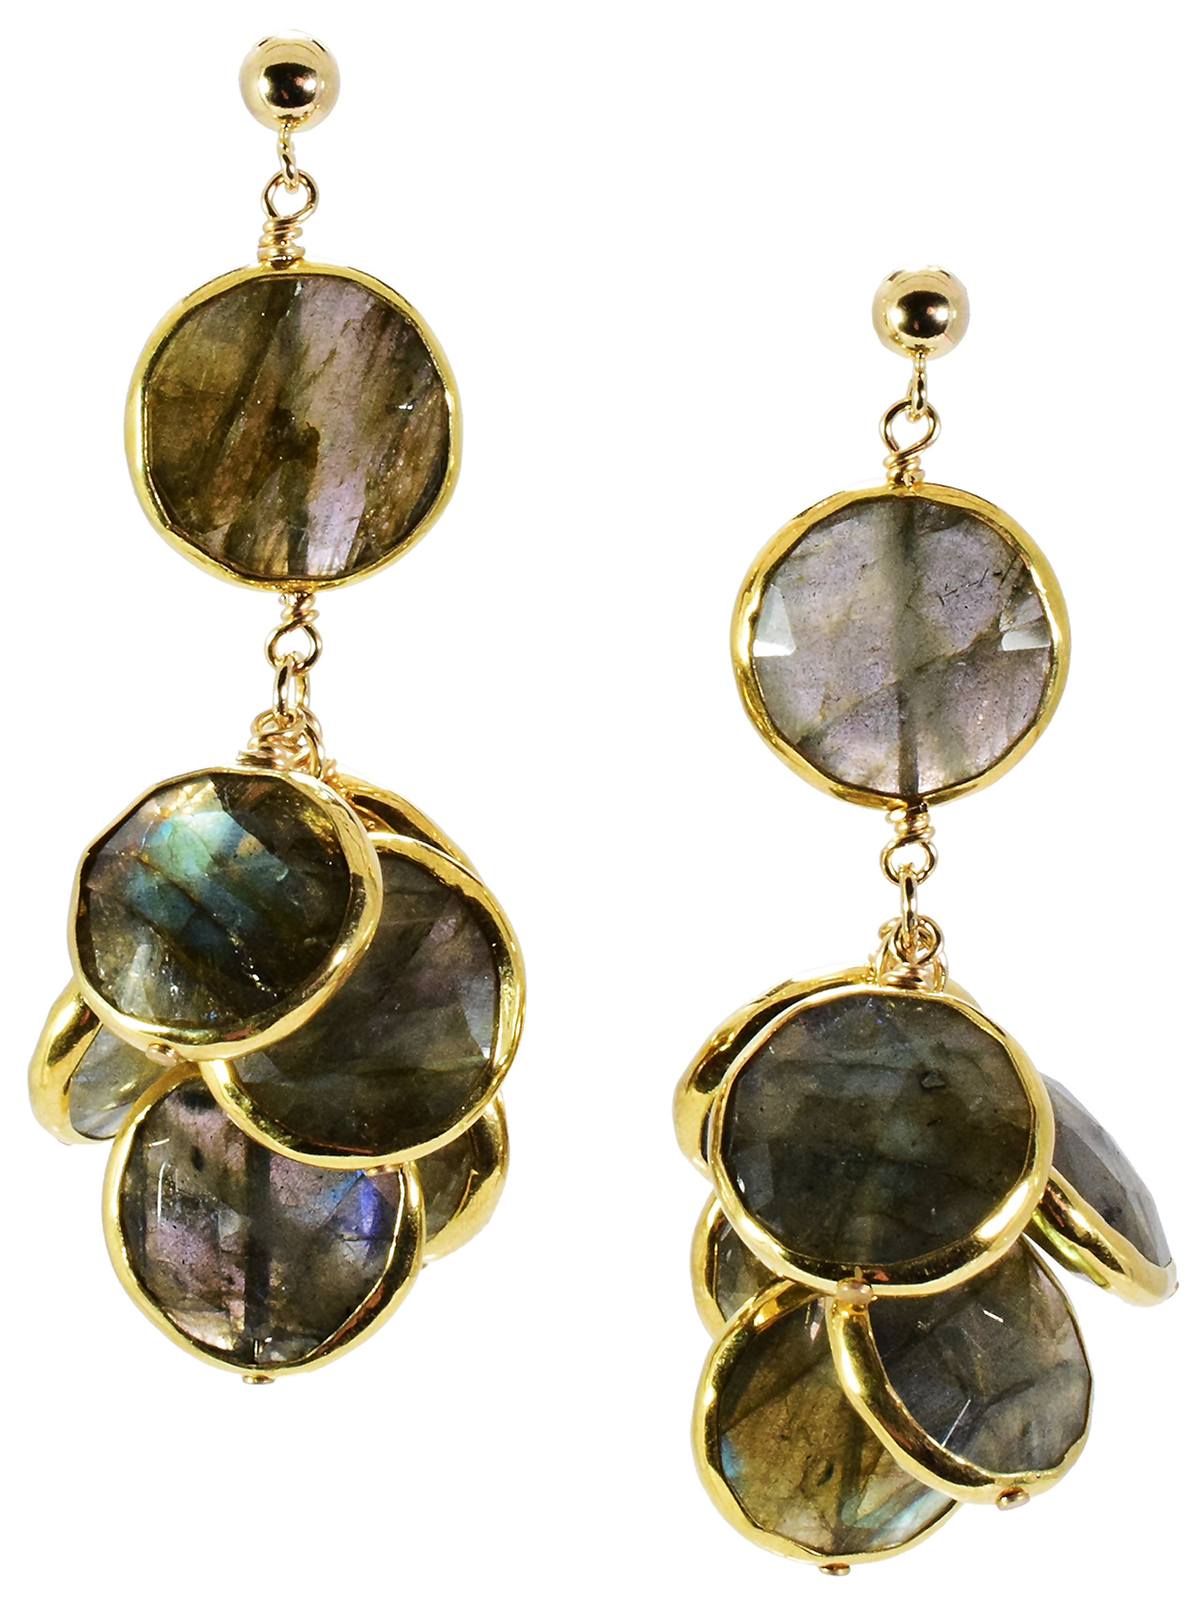 Labradorite Bezel Set Coin Earrings